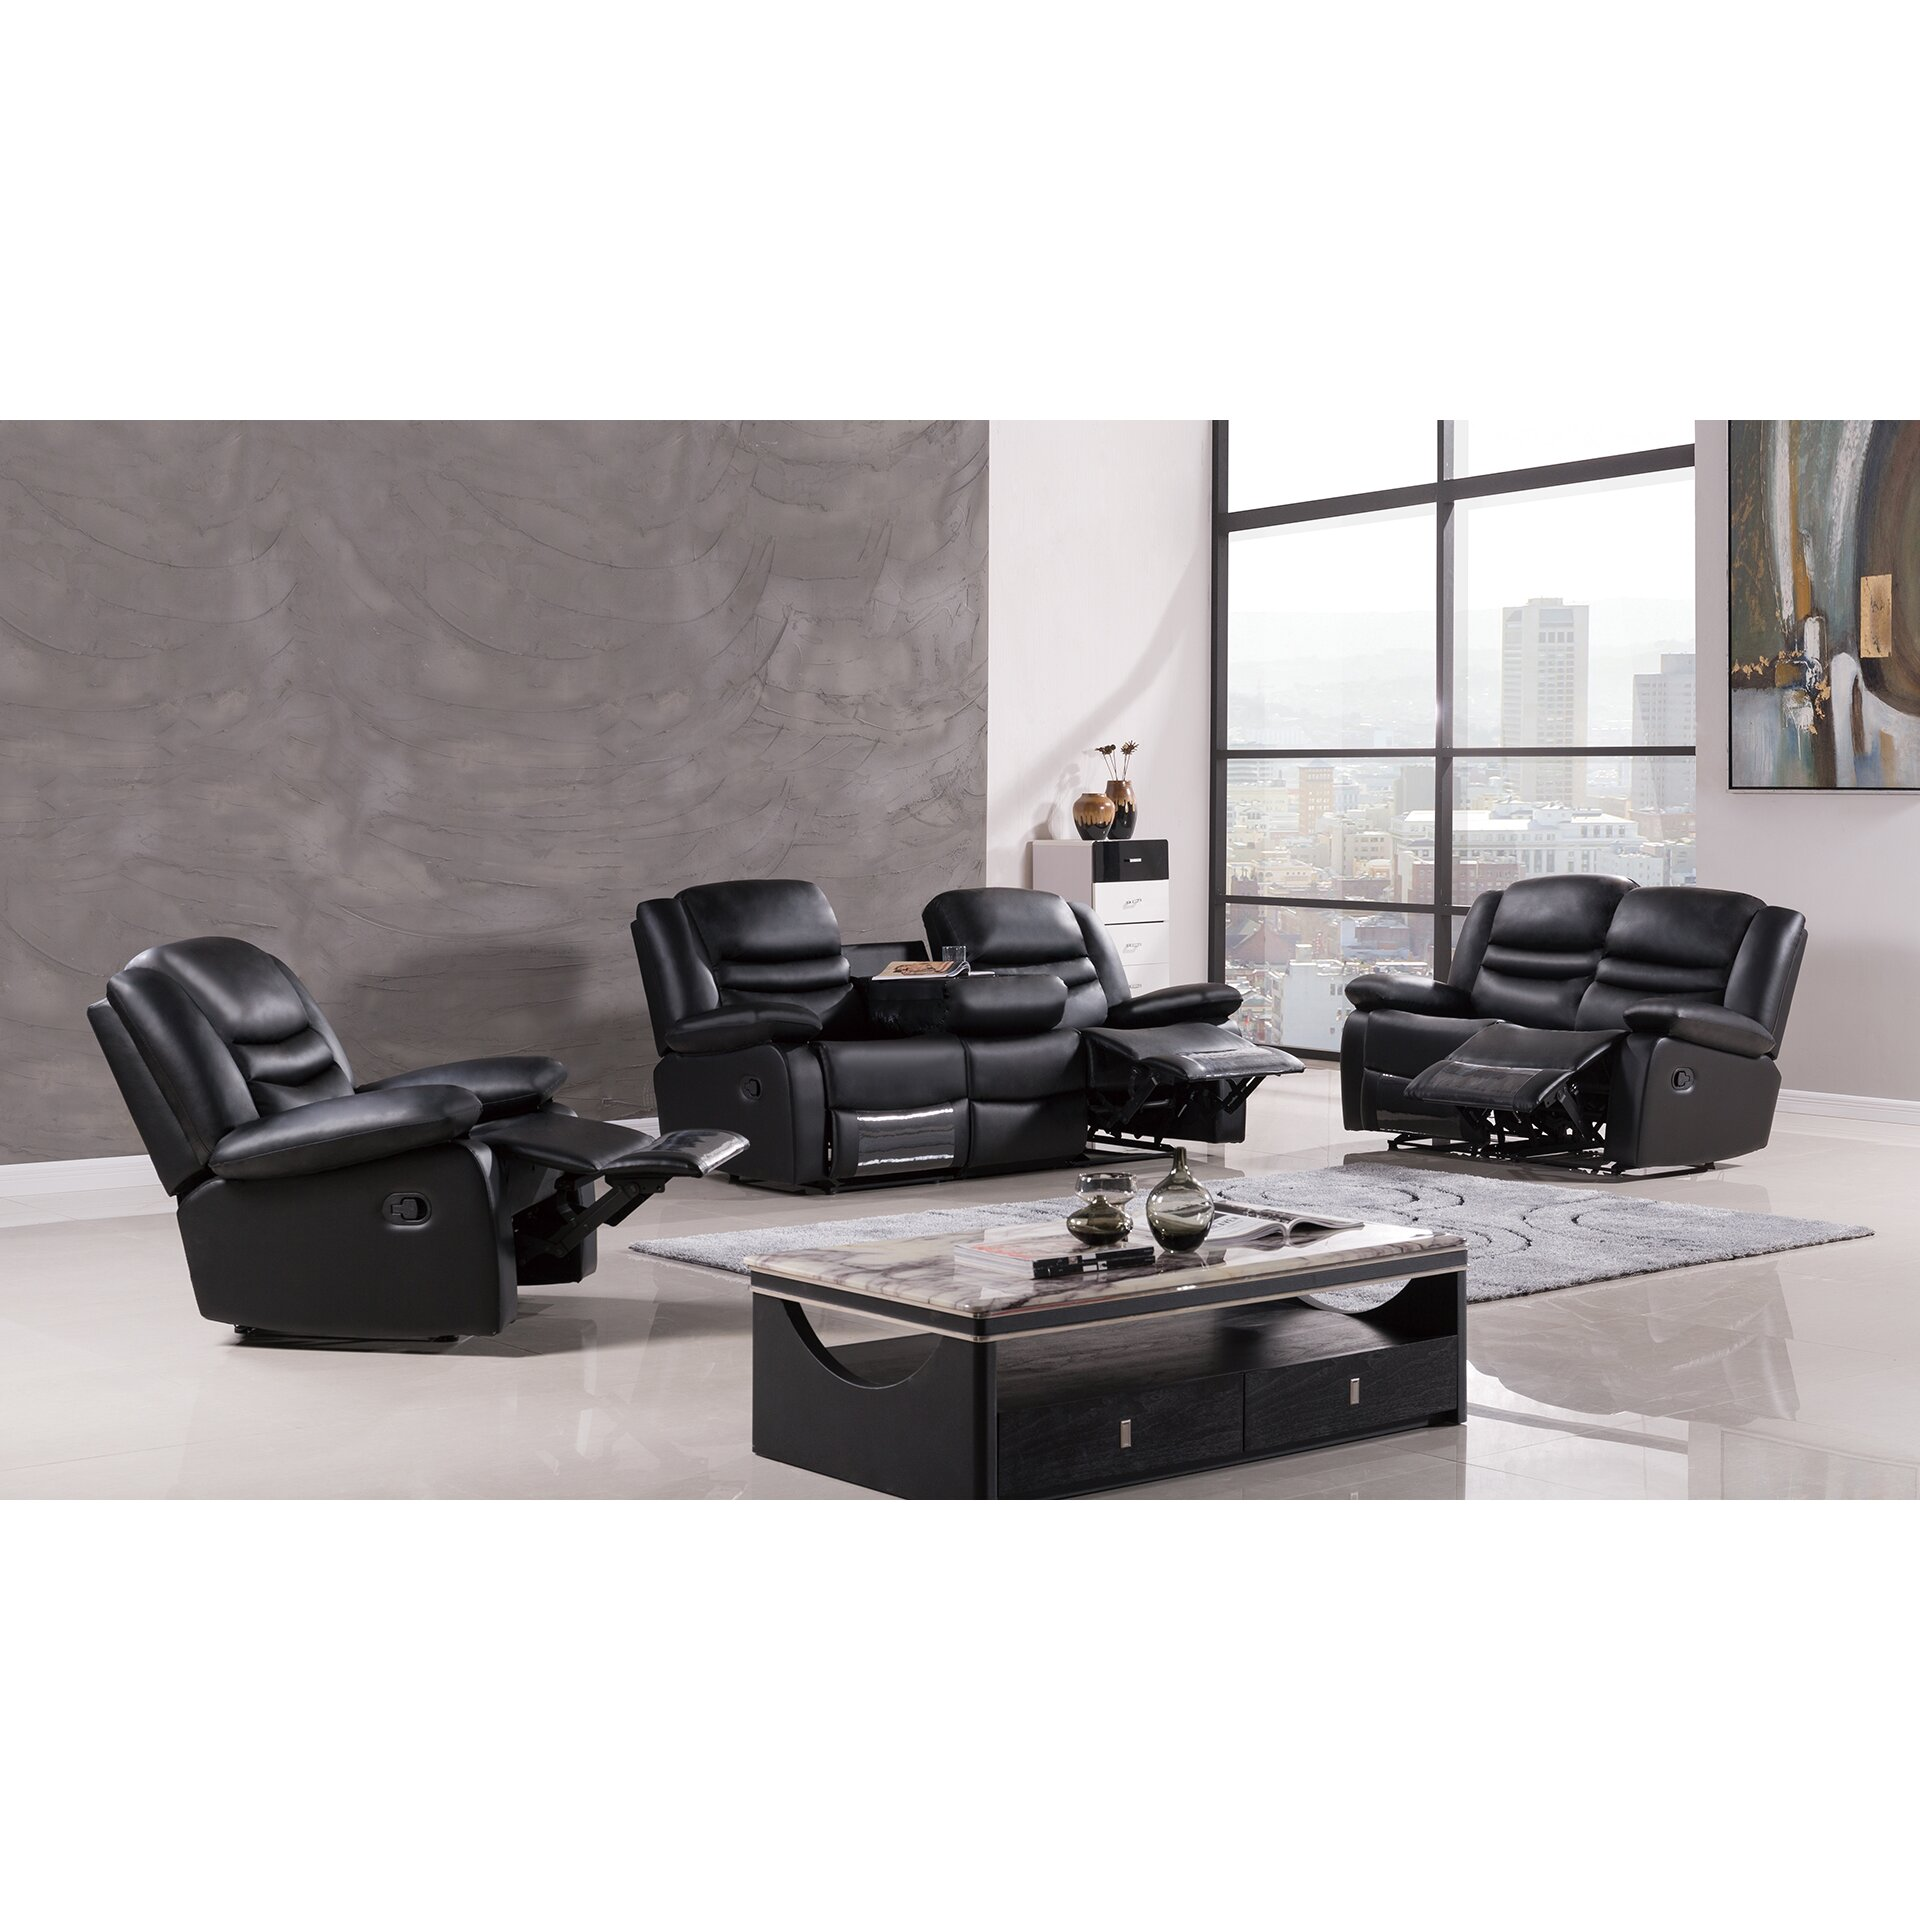 White Living Room Set For Leather Living Room Sets Youll Love Wayfair